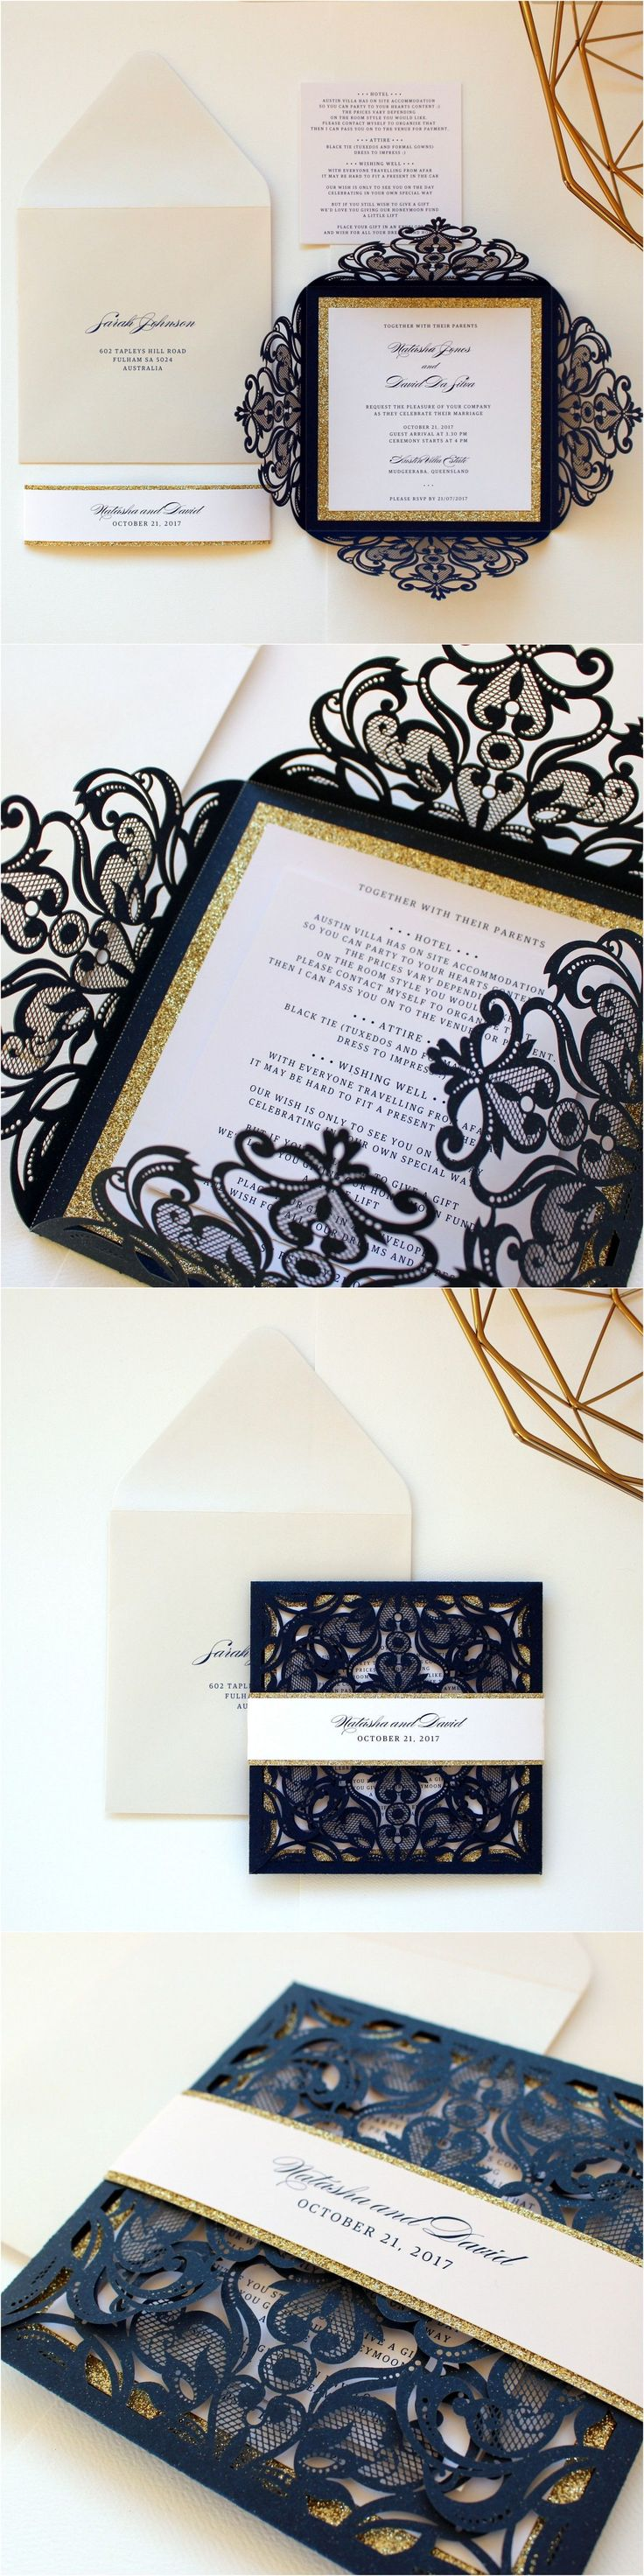 Navy and Gold Wedding Invitation Belly Bands